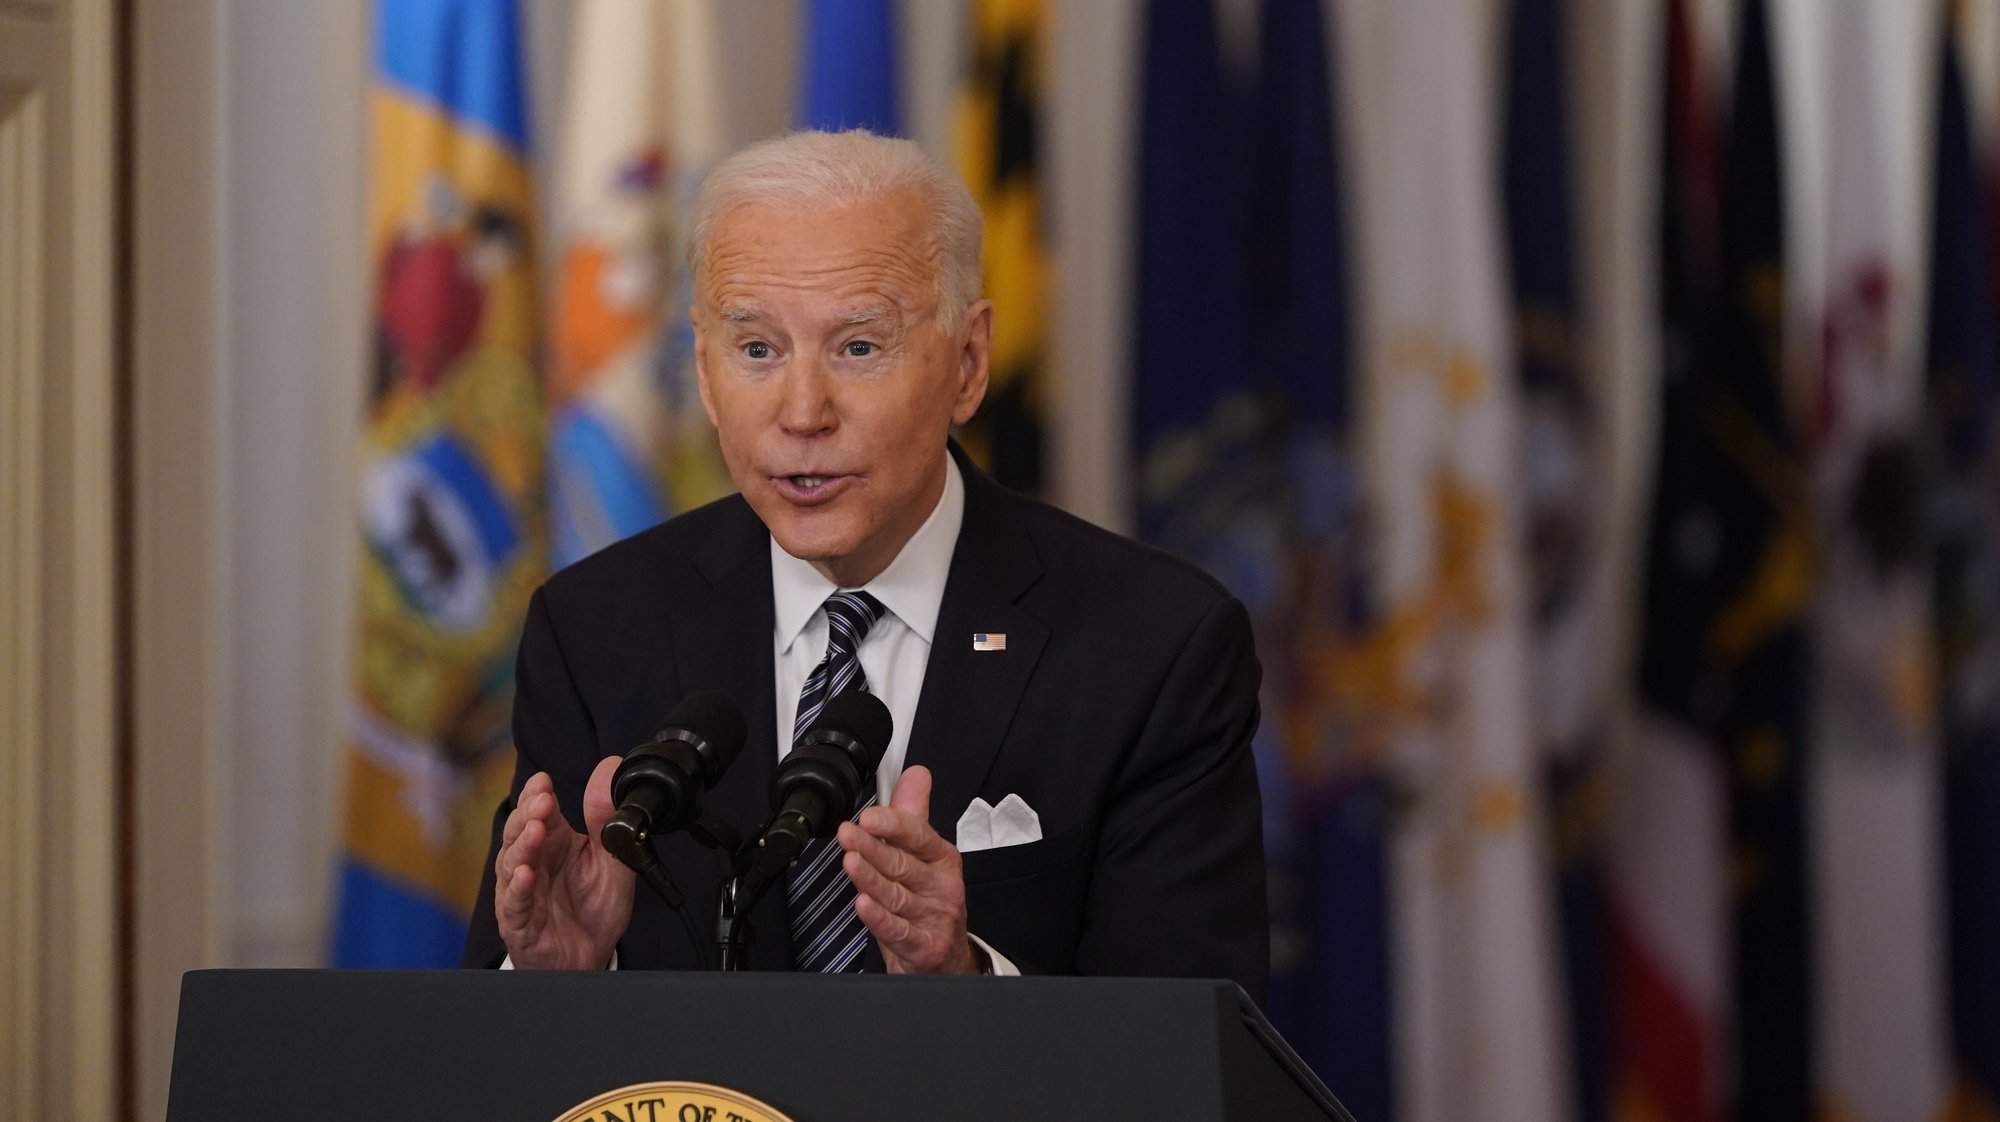 epa09068941 US President Joe Biden delivers a nationally televised address to the nation on the one-year anniversary of the COVID-19 pandemic shutdown in the East Room of the White House in Washington, DC, USA, 11 March 2021.  EPA/Chris Kleponis / POOL